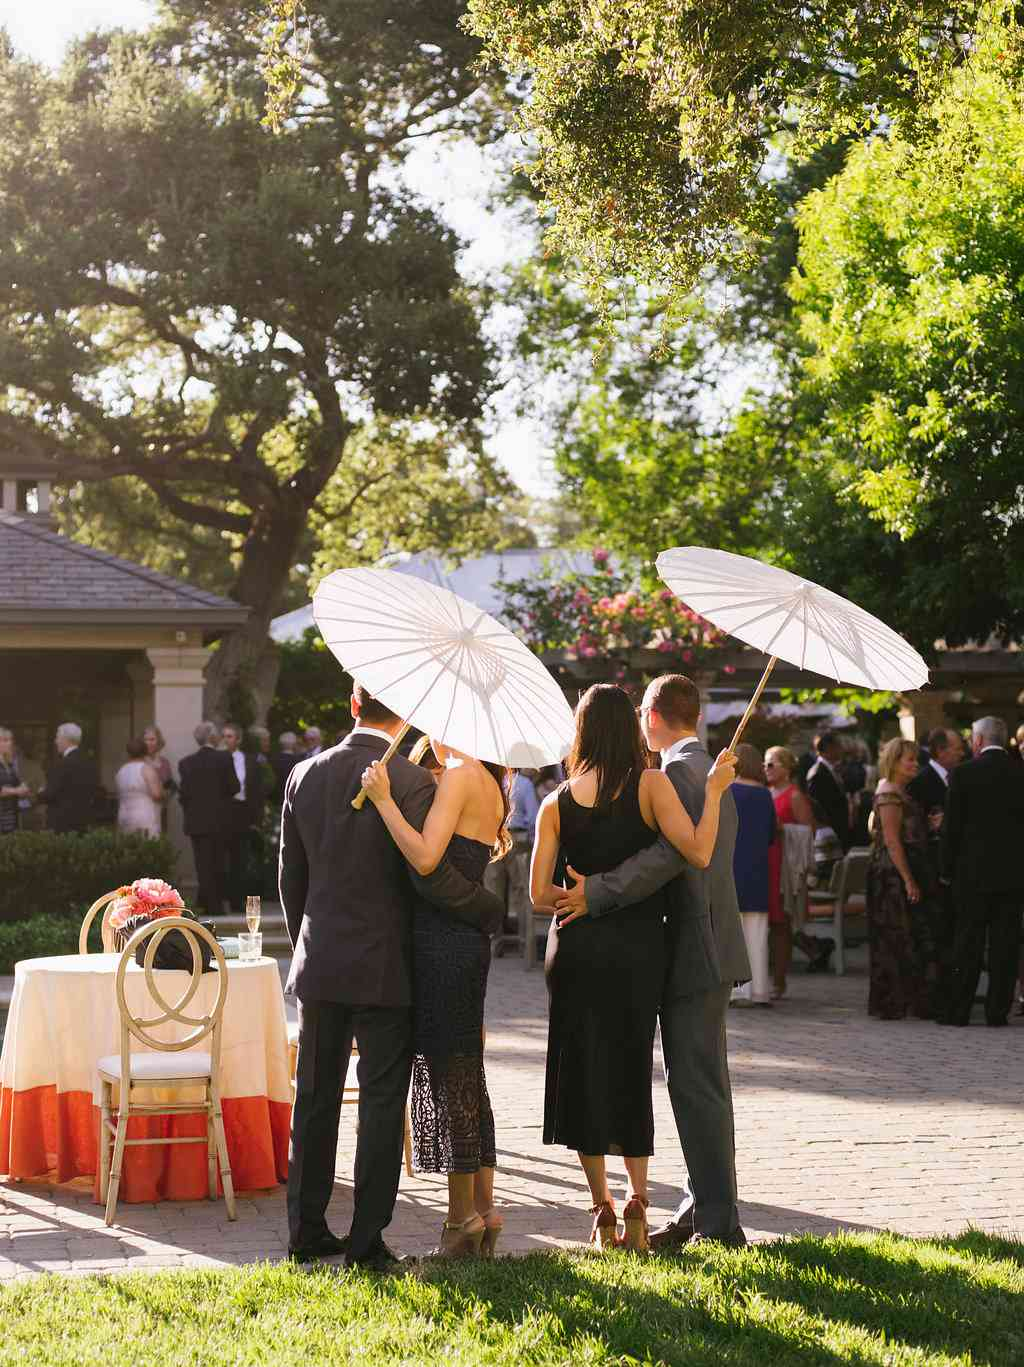 Wedding guests holding parasols at an outdoor wedding